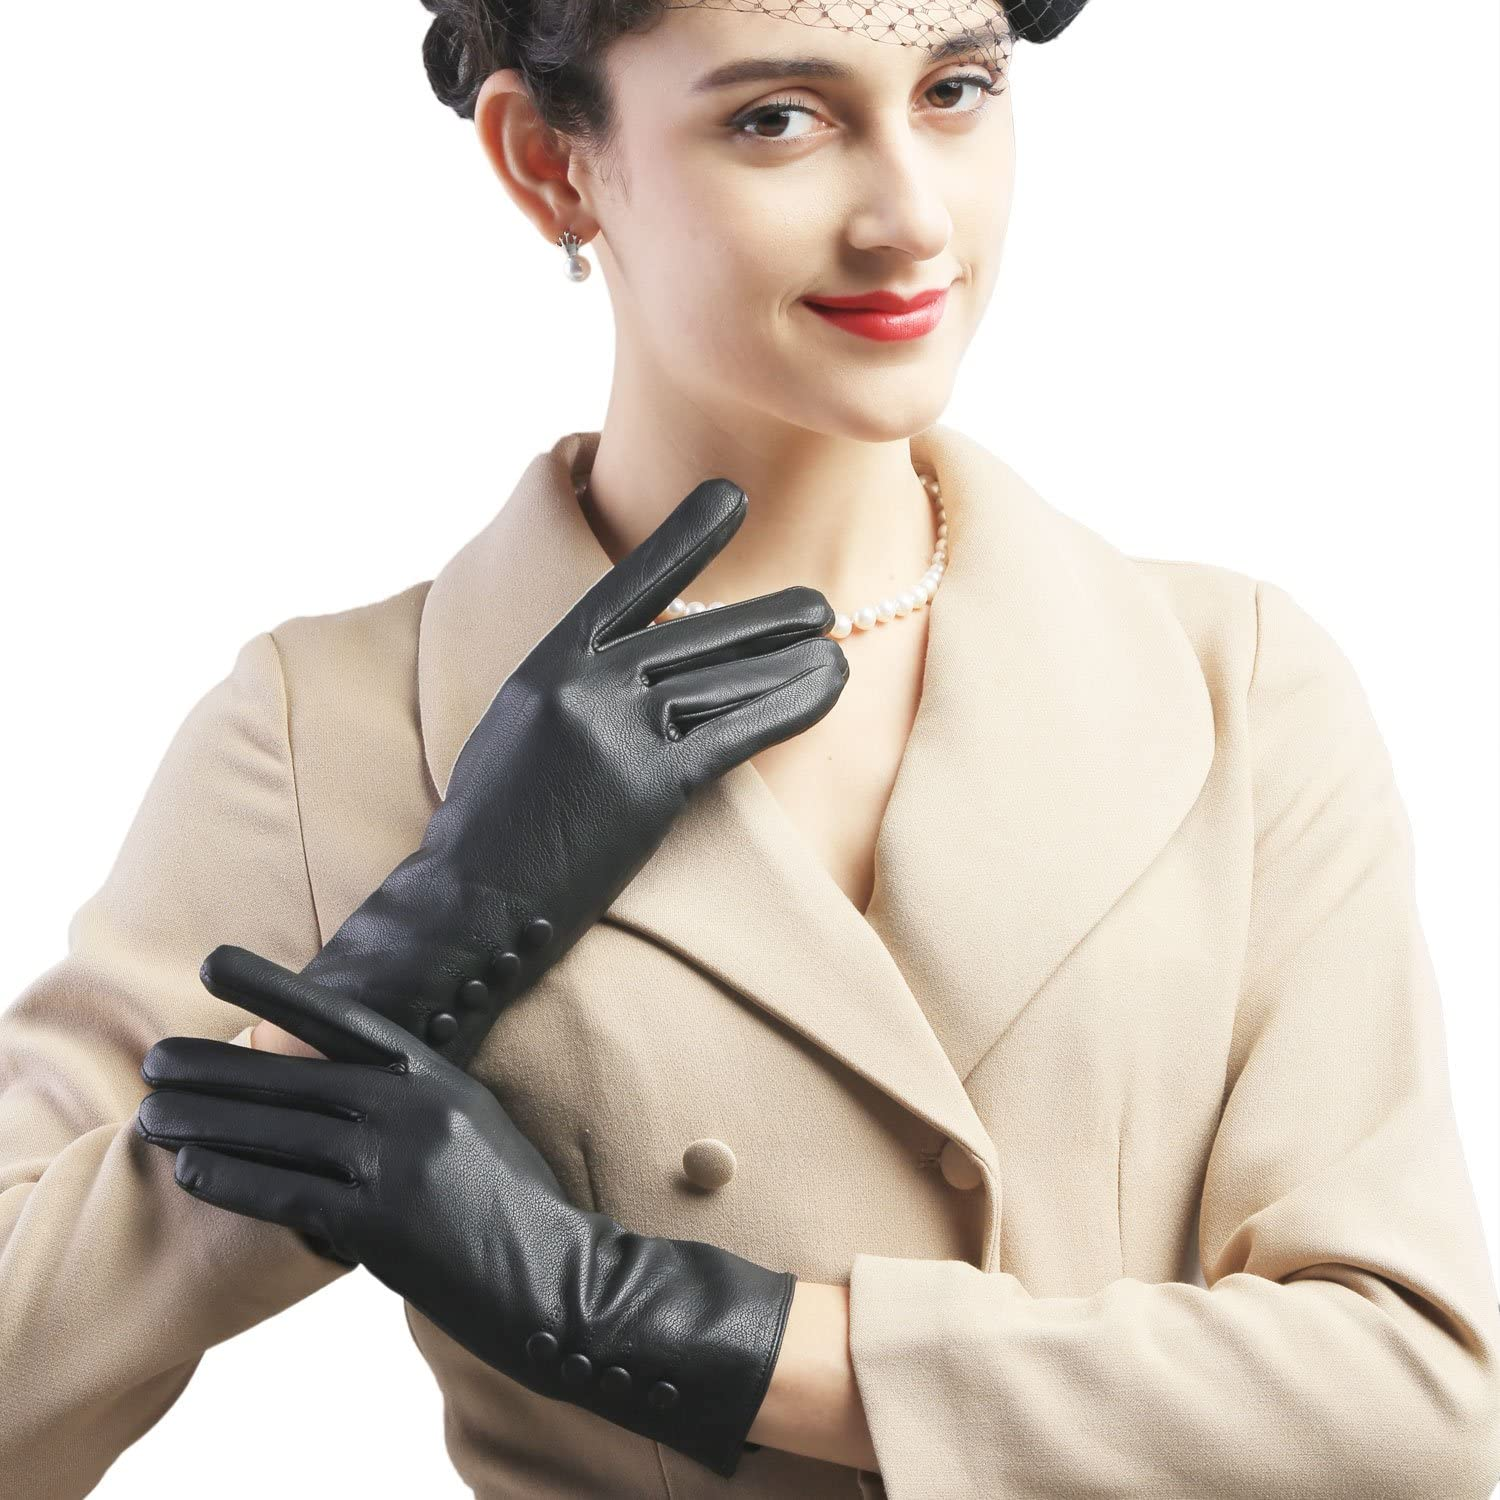 Mandy's Women's Autumn Winter 4 Button Driving Faux Leather Gloves